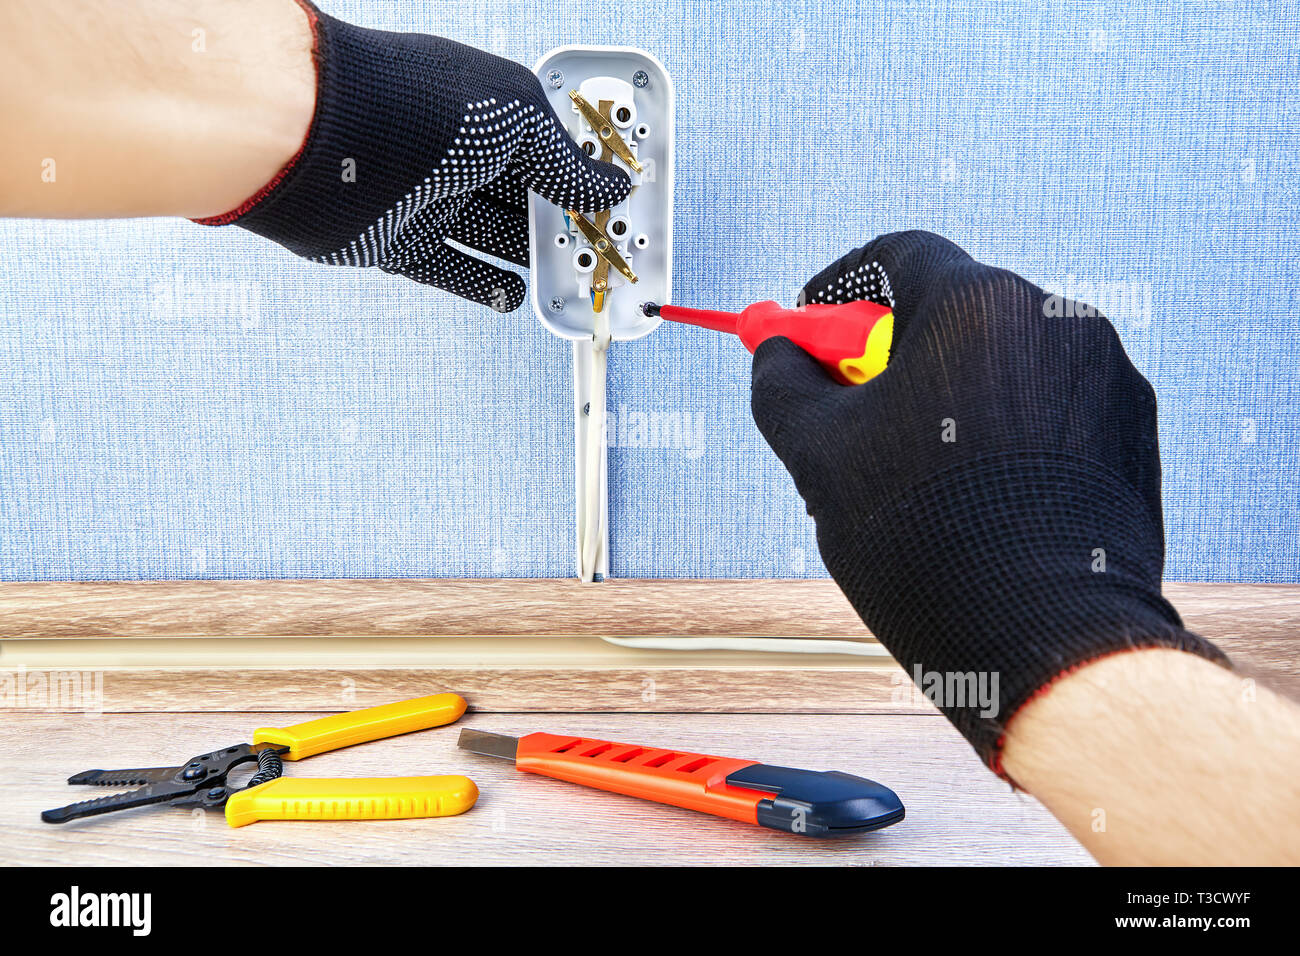 Surprising Worker In Protective Gloves Is Twisting Screw In New Electric Outlet Wiring Digital Resources Spoatbouhousnl